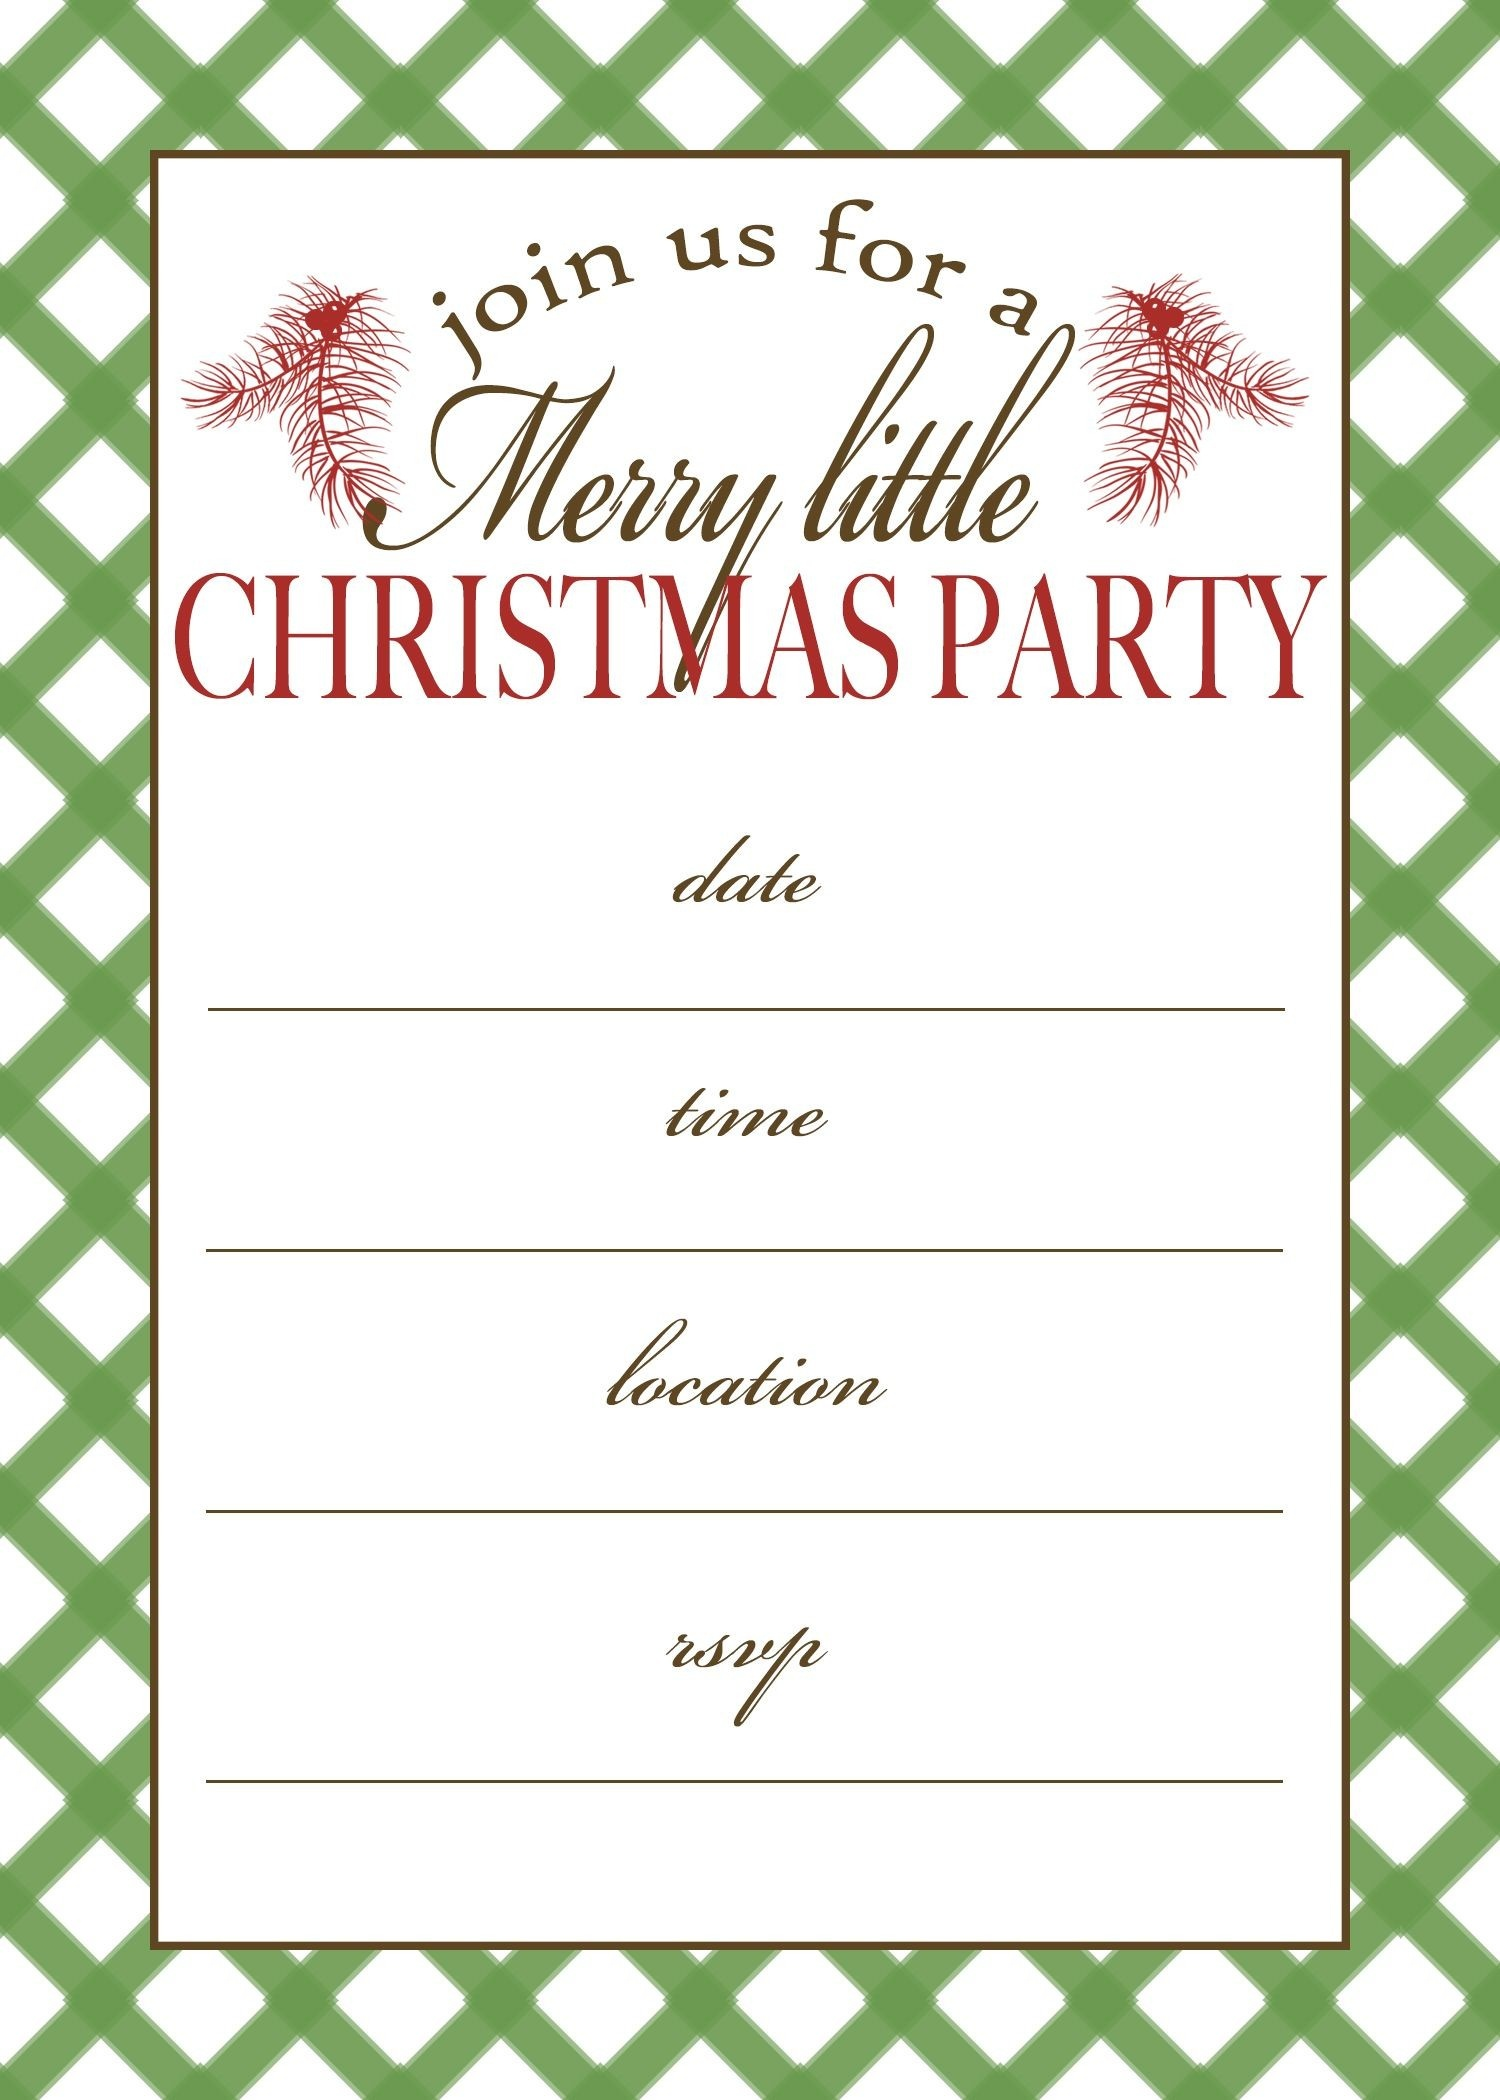 Printable Christmas Party Invitations Free Templates - Loveandrespect - Free Printable Personalized Christmas Invitations